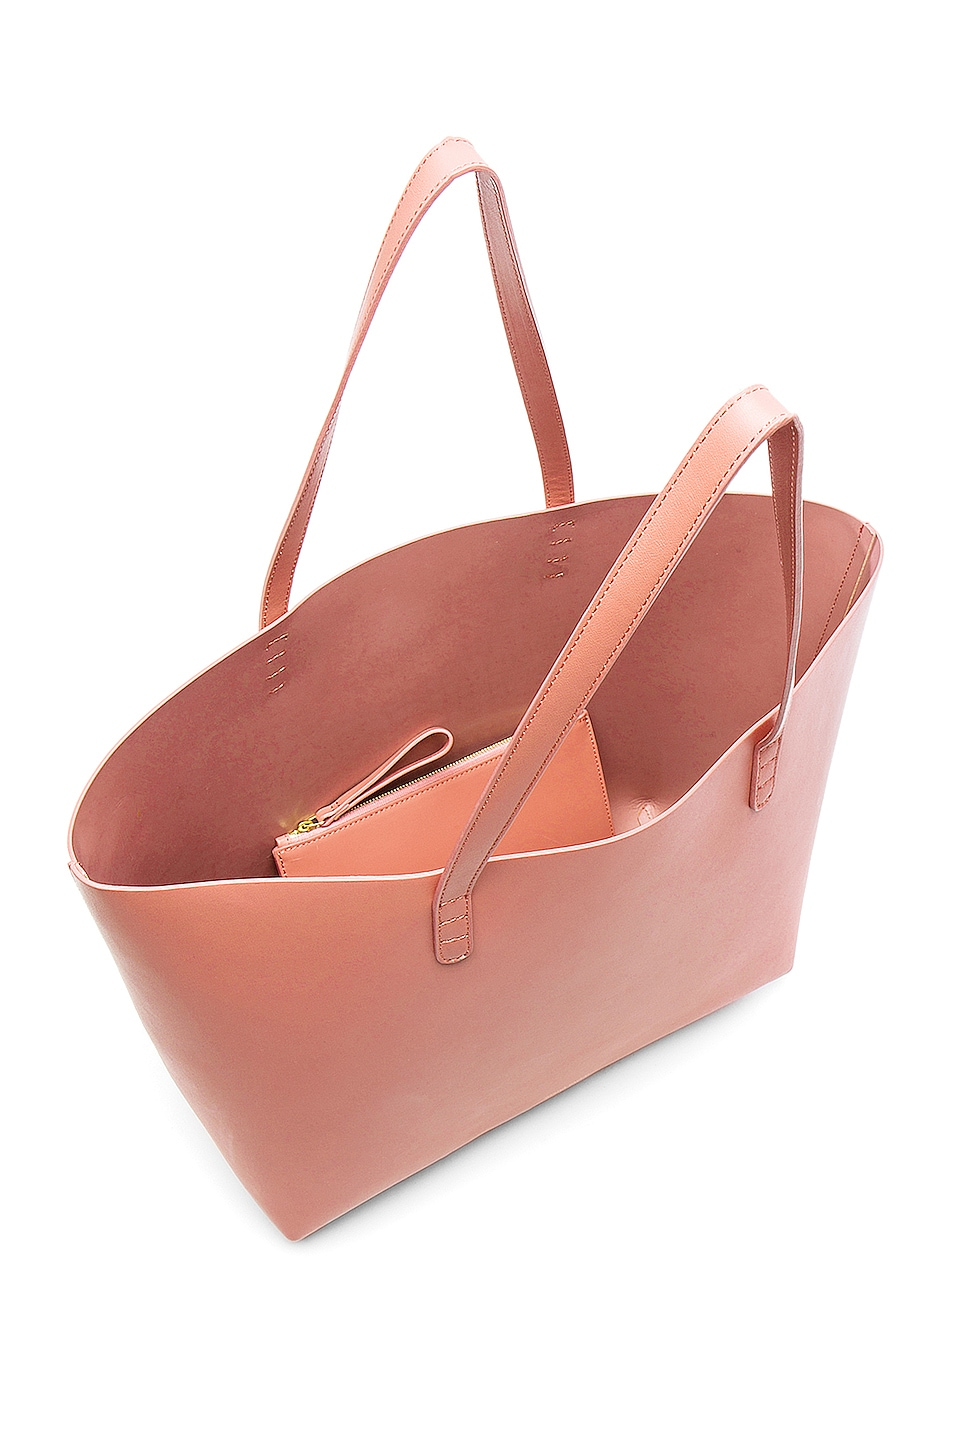 Image 5 of Mansur Gavriel Large Tote in Blush Calf